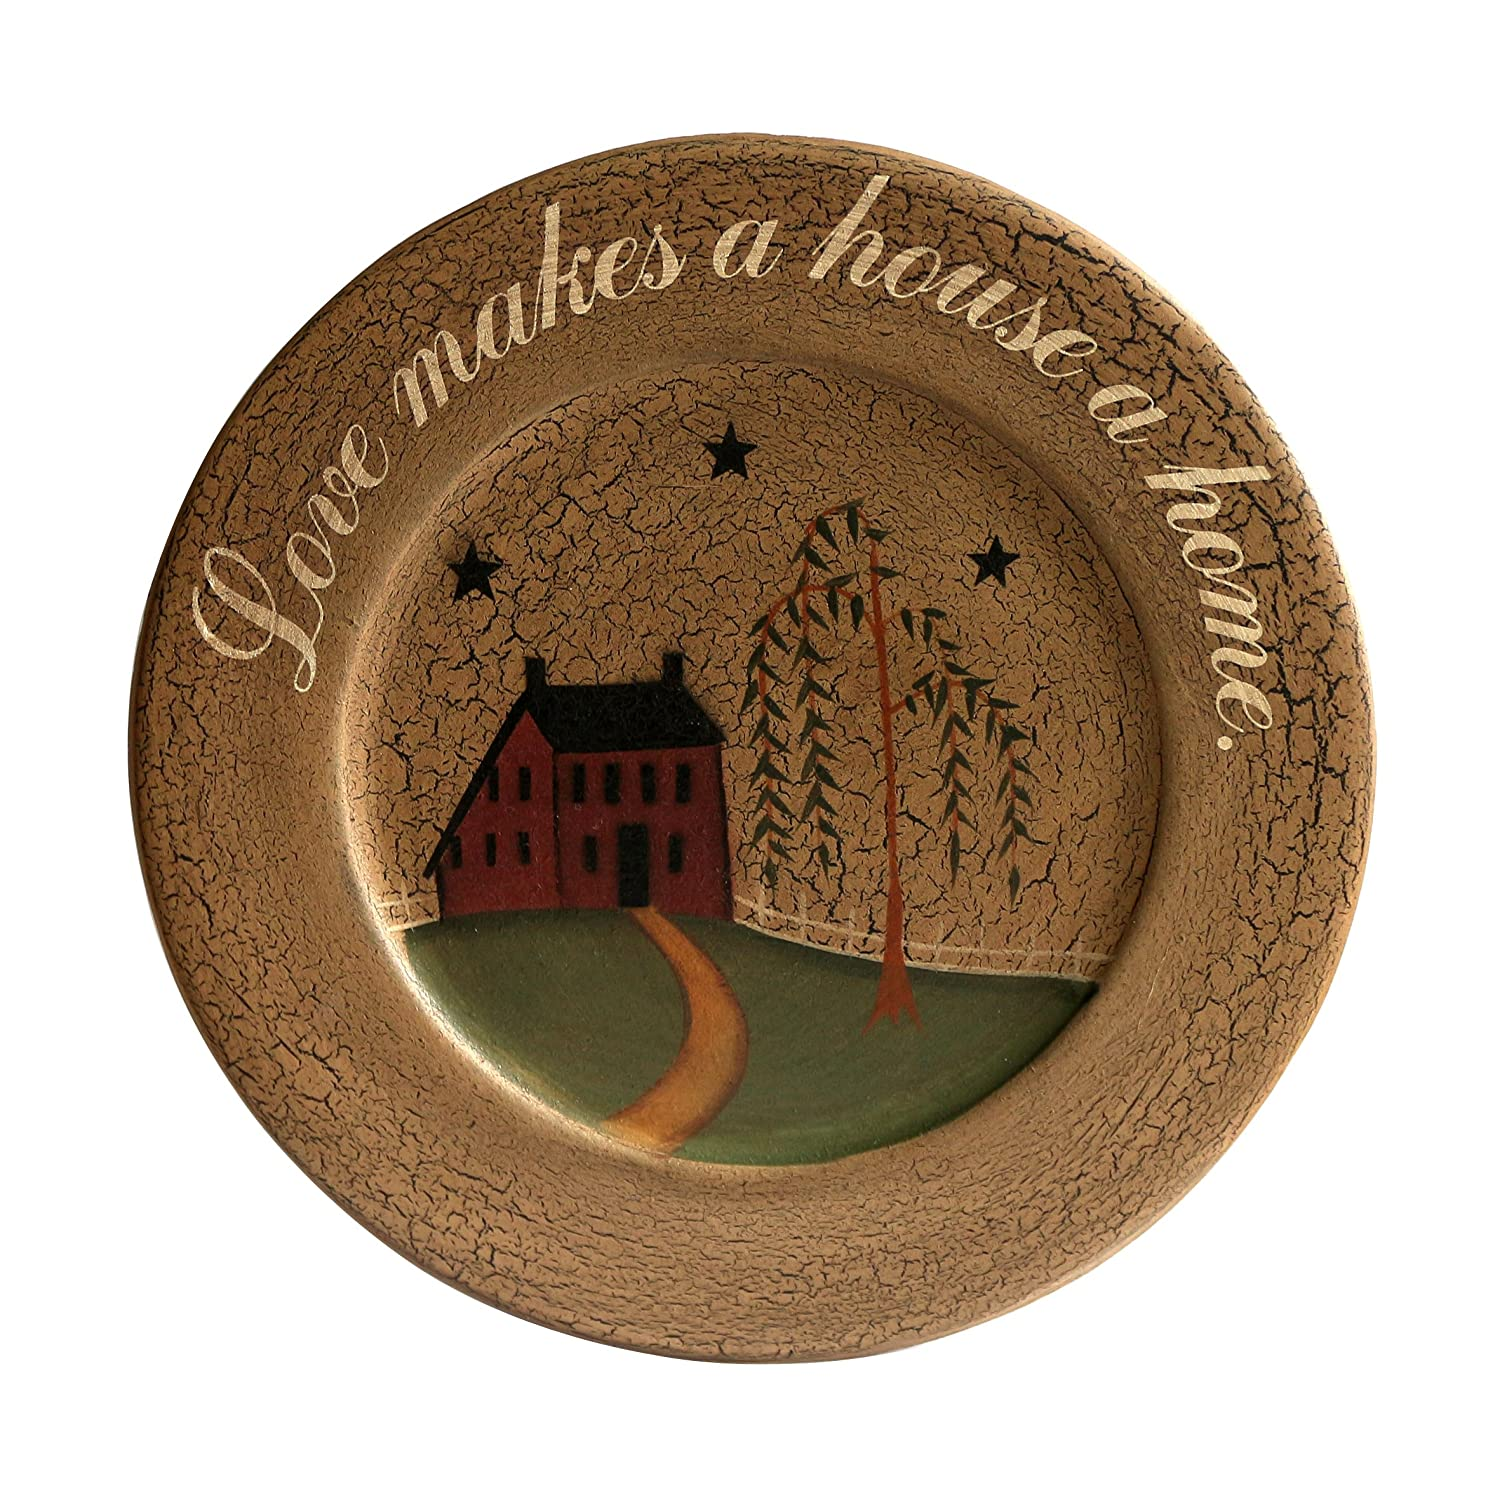 CVHOMEDECO. Primitive Country House Willow Tree Footpath Wood Decorative Plate Round Crackled Display Wooden Plate Home Décor Art, 9-3/4 Inch